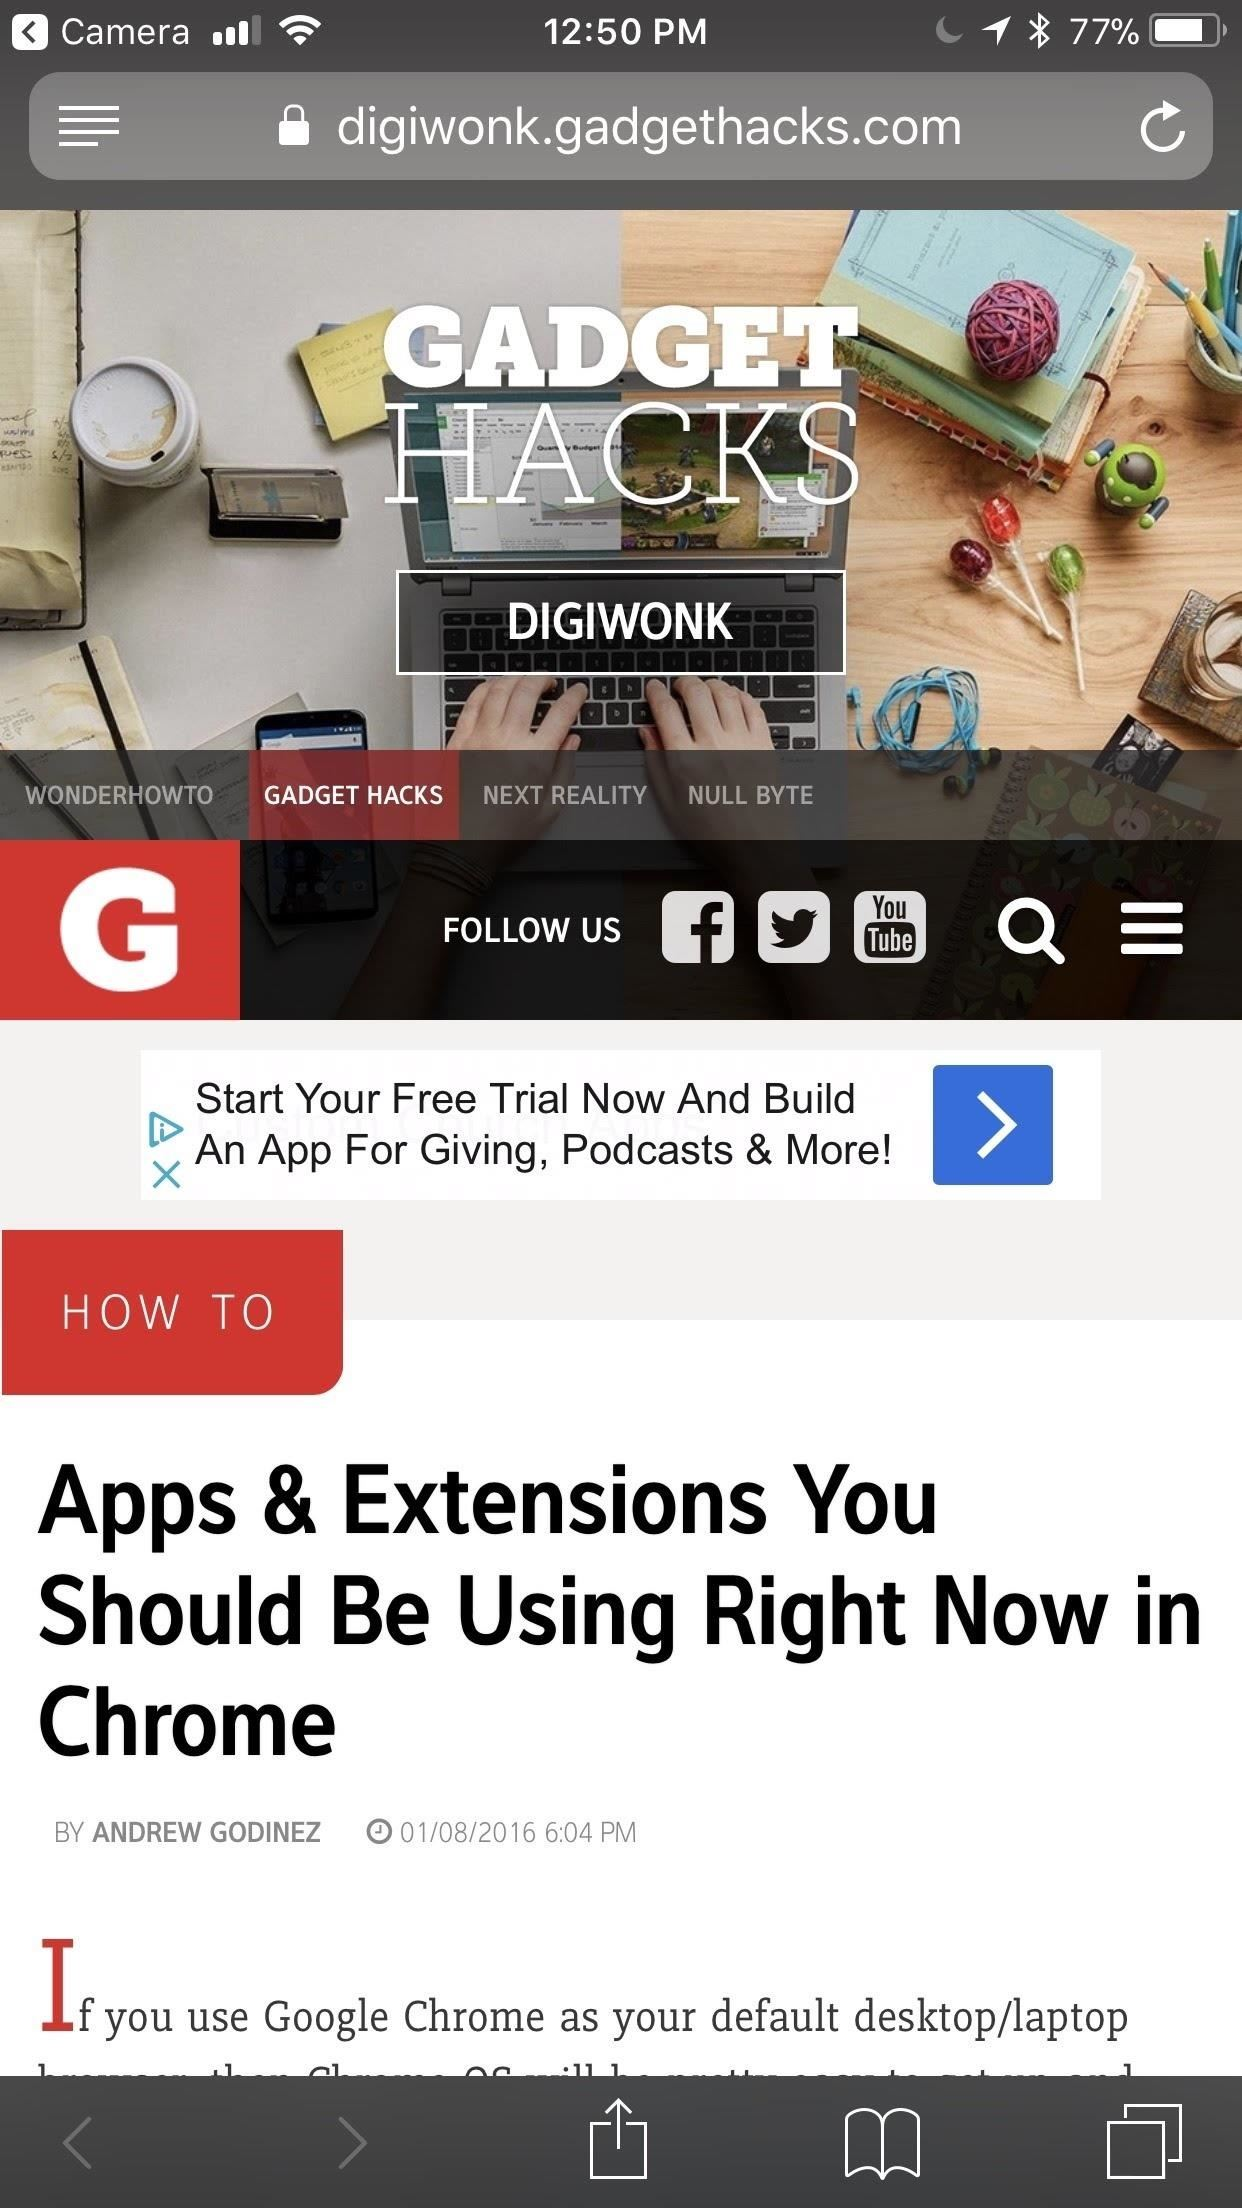 The Easy Way to Get Your Chrome Desktop Tabs in Your iPhone's Safari Browser